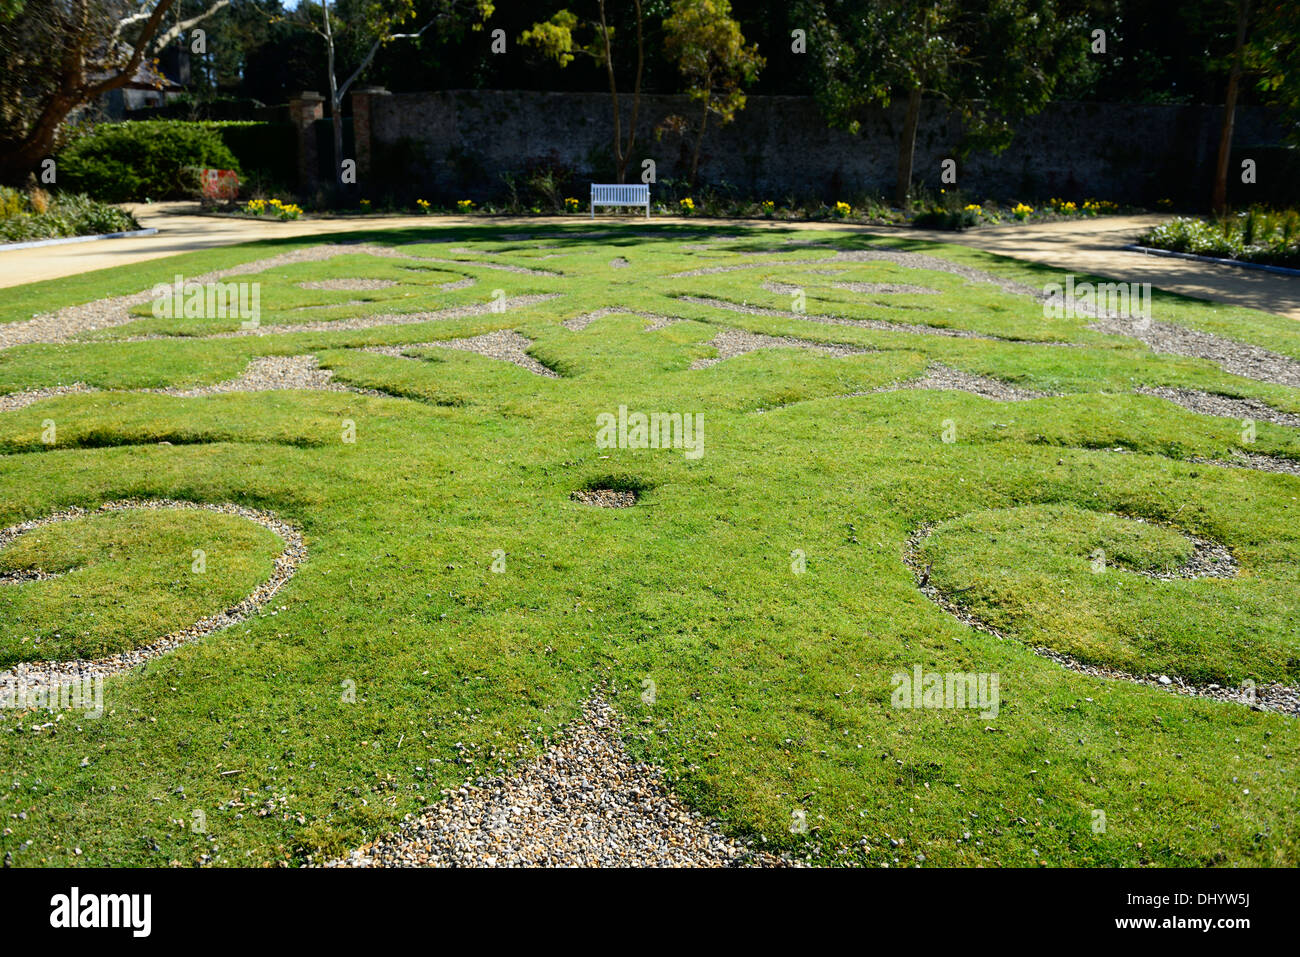 malahide castle lawn topiary design display shape shapes patterns patterned style styled stylised - Stock Image